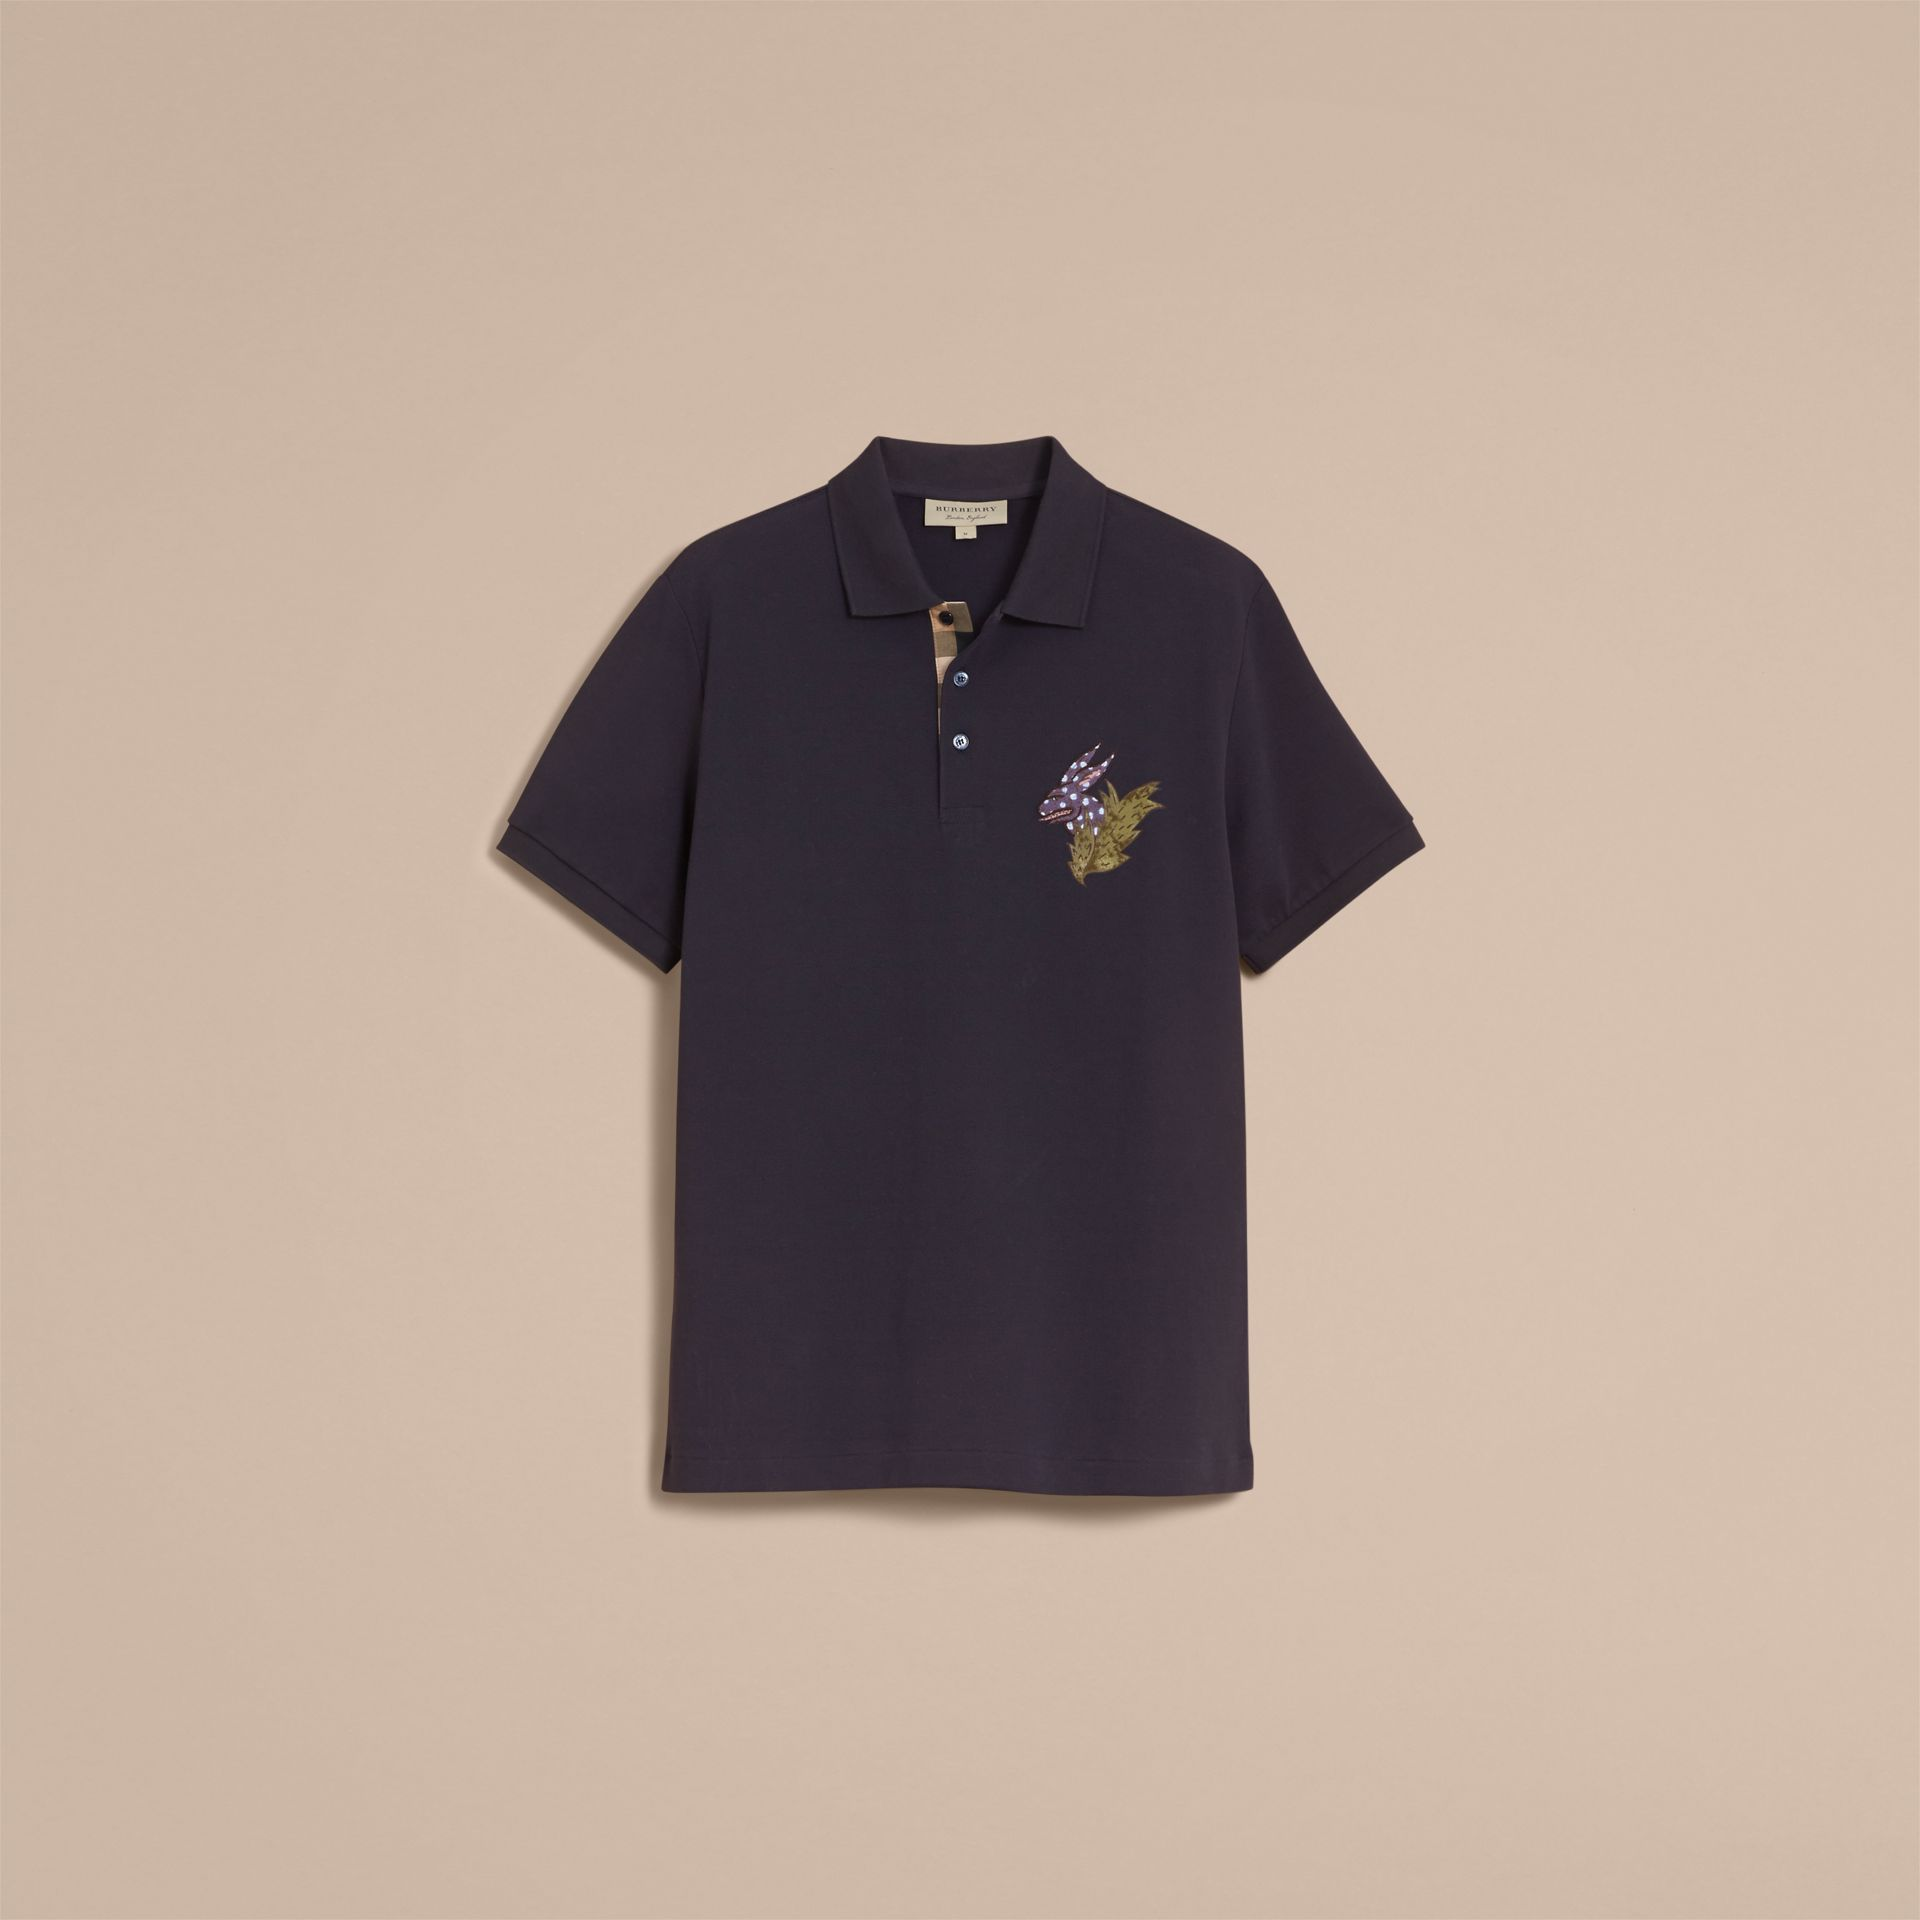 Beasts Motif Cotton Piqué Polo Shirt in Dark Navy - Men | Burberry Canada - gallery image 4